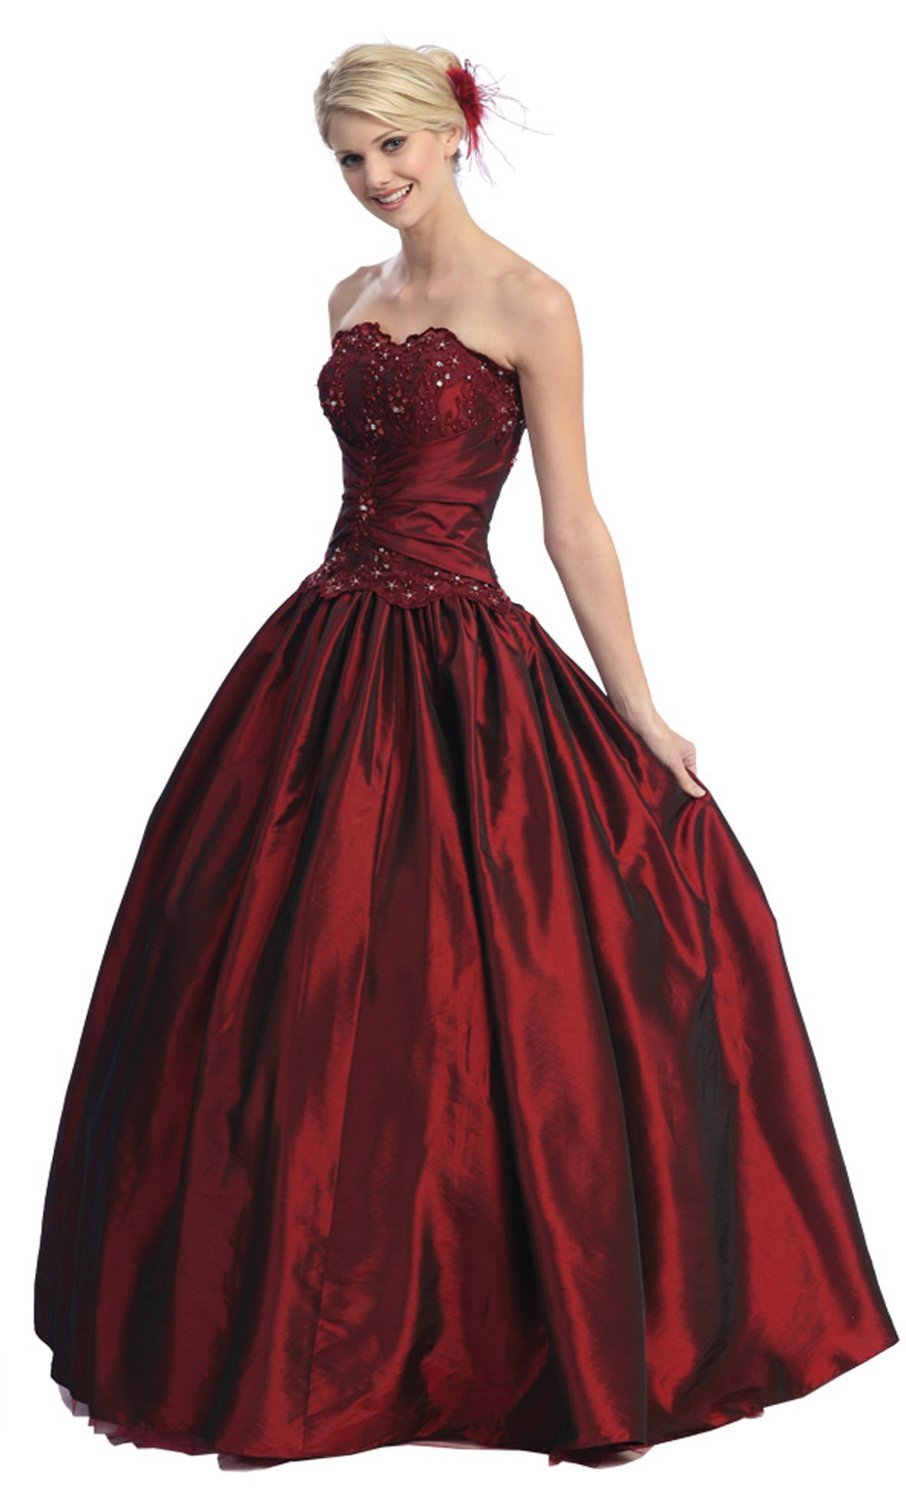 Beautiful wedding dresses ball gown strapless formal prom for Elegant ball gown wedding dresses